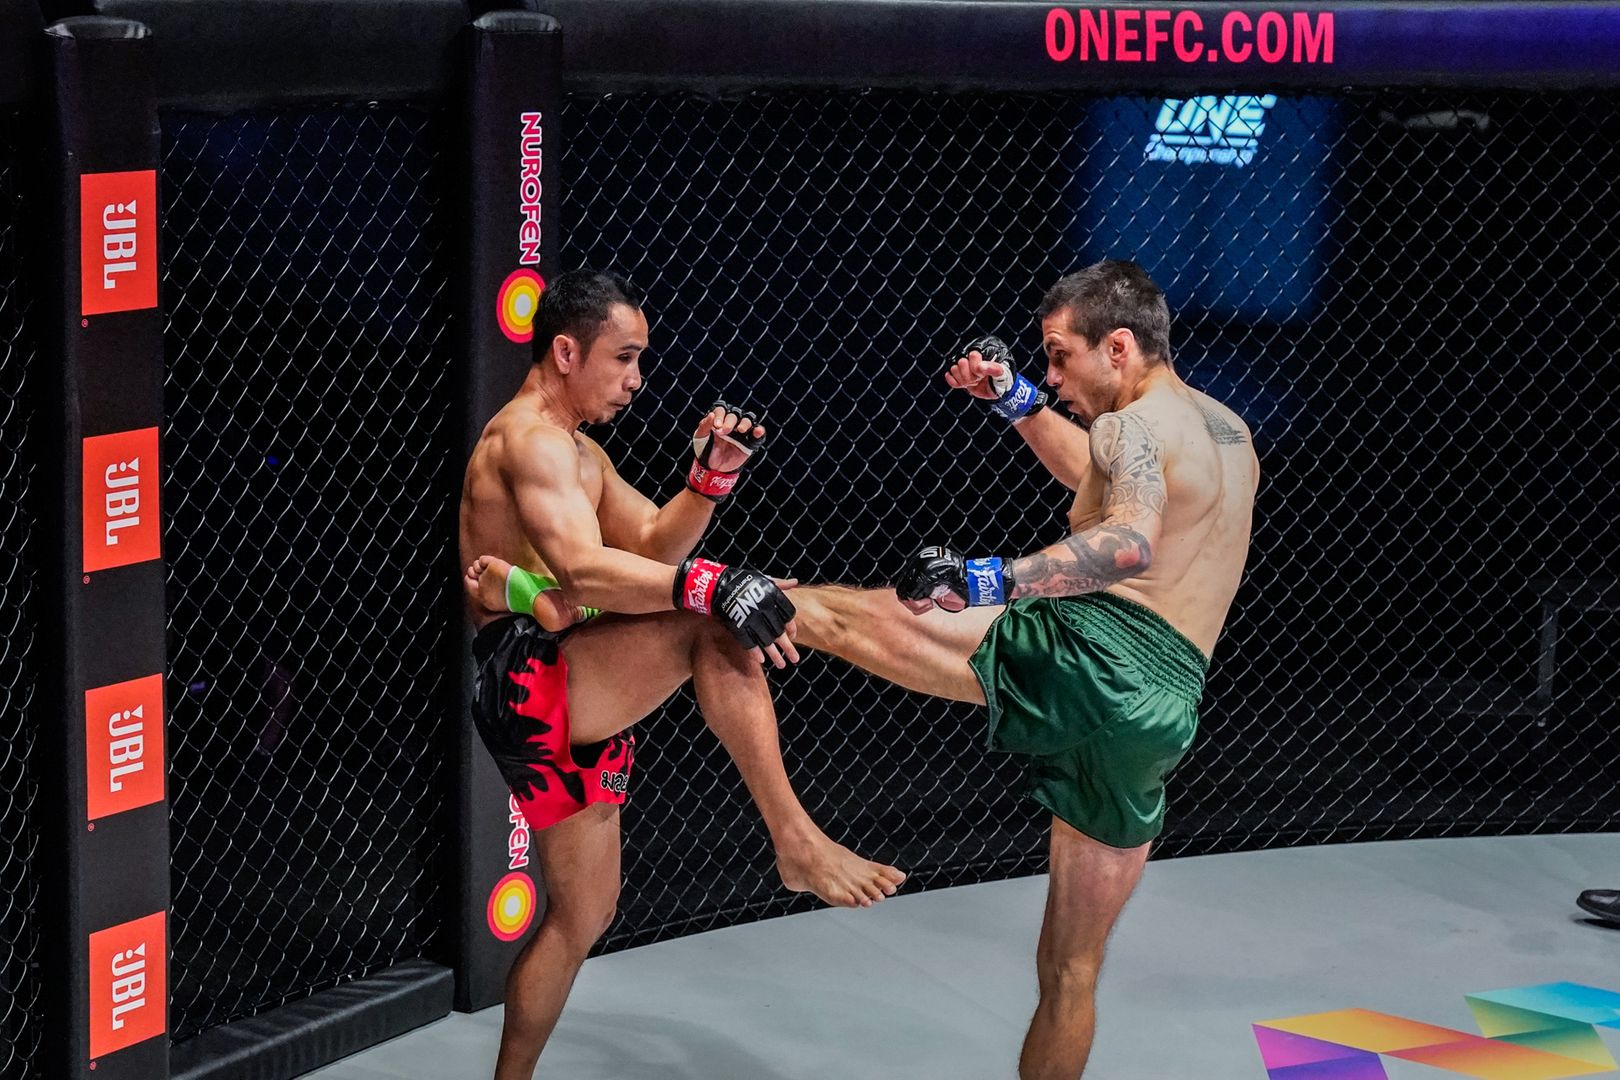 Live action shots of Muay Thai fighters Sam-A Gaiyanghadao and Josh Tonna from ONE: REIGN OF DYNASTIES on 9 October!